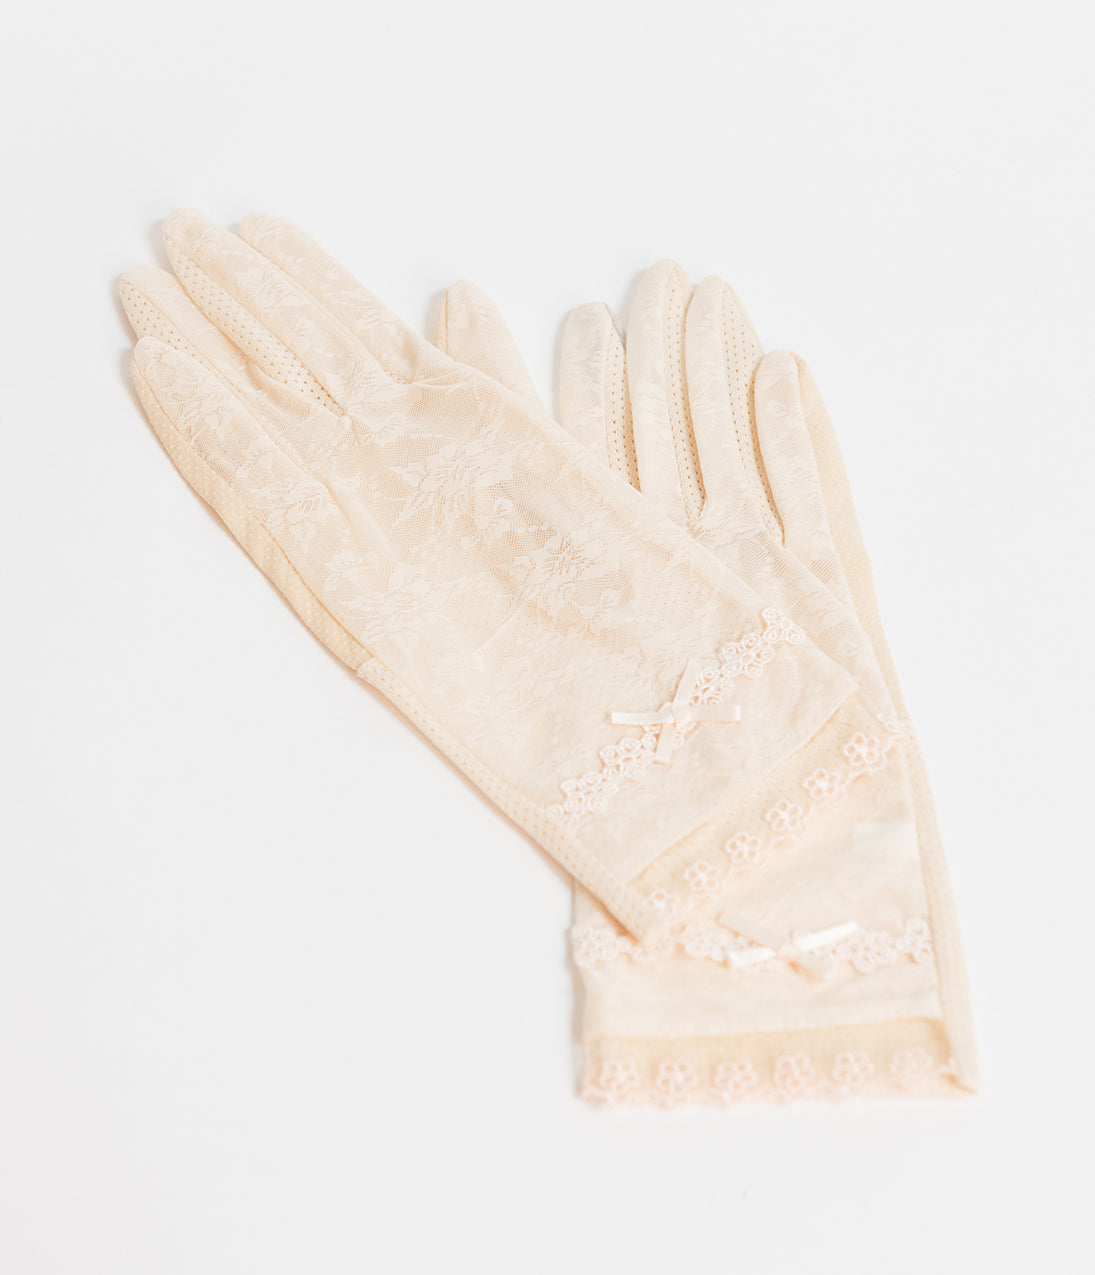 Vintage Style Gloves- Long, Wrist, Evening, Day, Leather, Lace Unique Vintage Cream Mesh Lace Wrist Gloves $20.00 AT vintagedancer.com